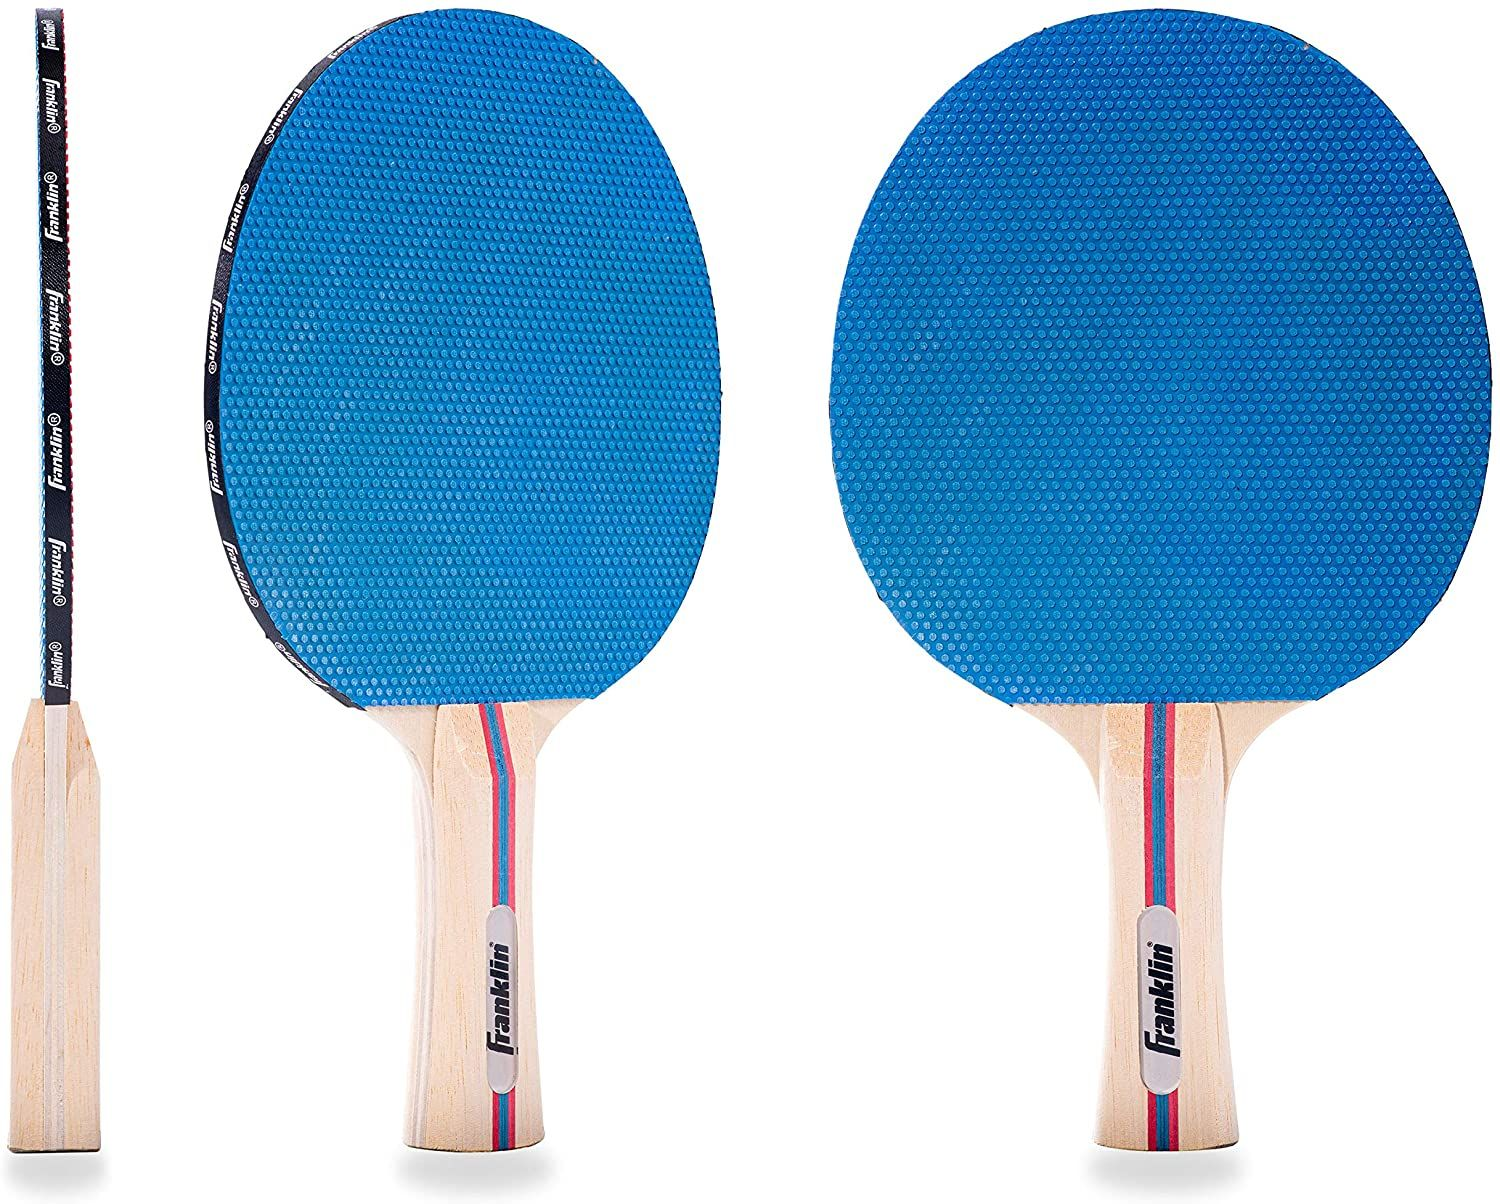 Franklin Sports Table Tennis Paddle Set With Balls In 2020 Table Tennis Game Table Tennis Franklin Sports